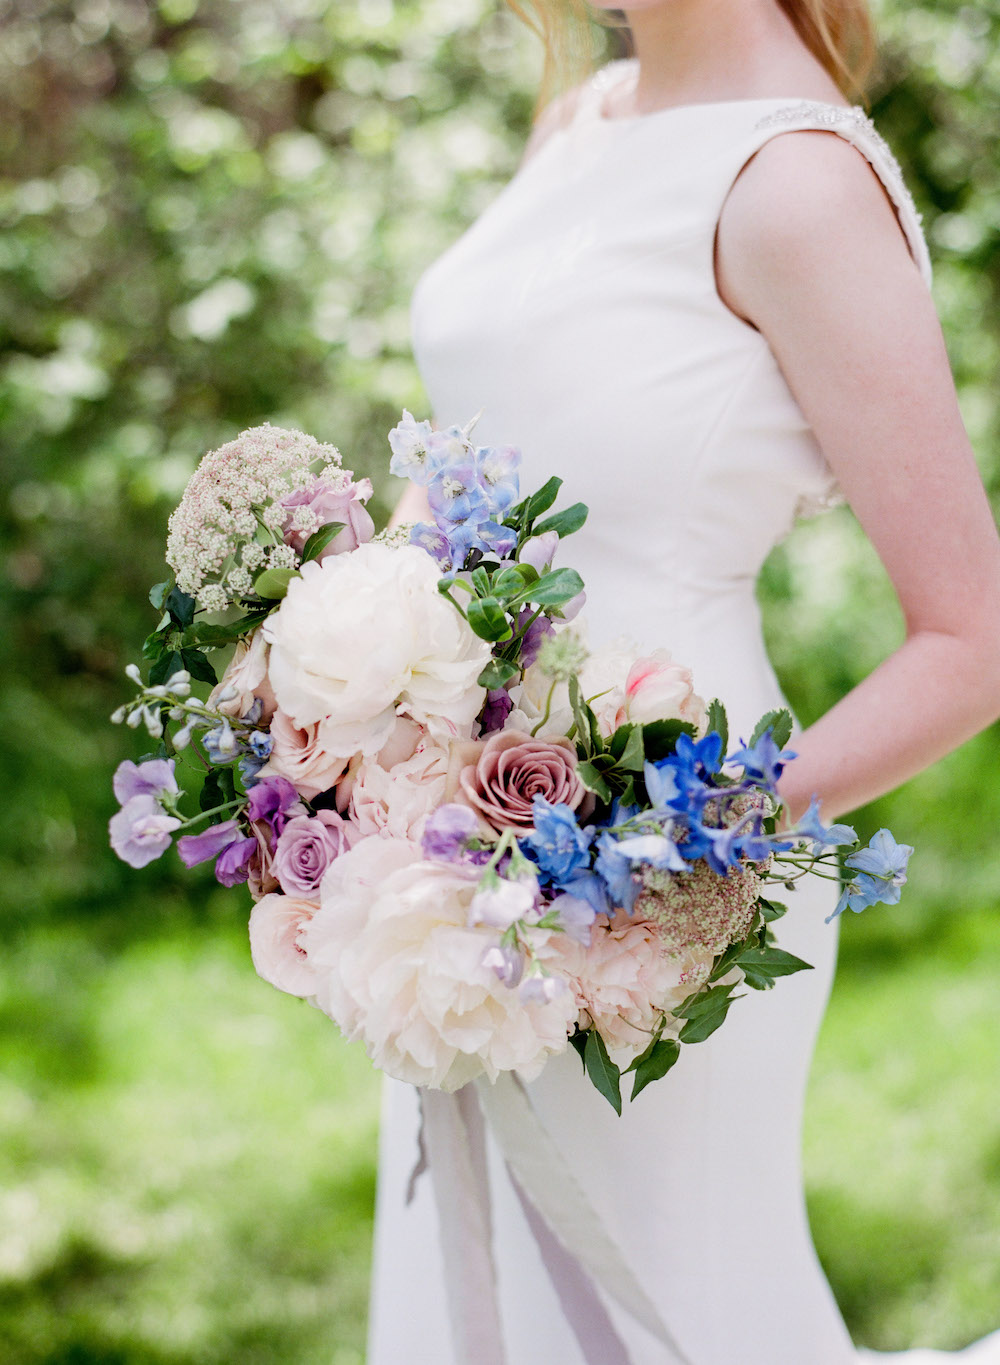 Spring Wedding bouquet with Peonies - Winnipeg Wedding Florists